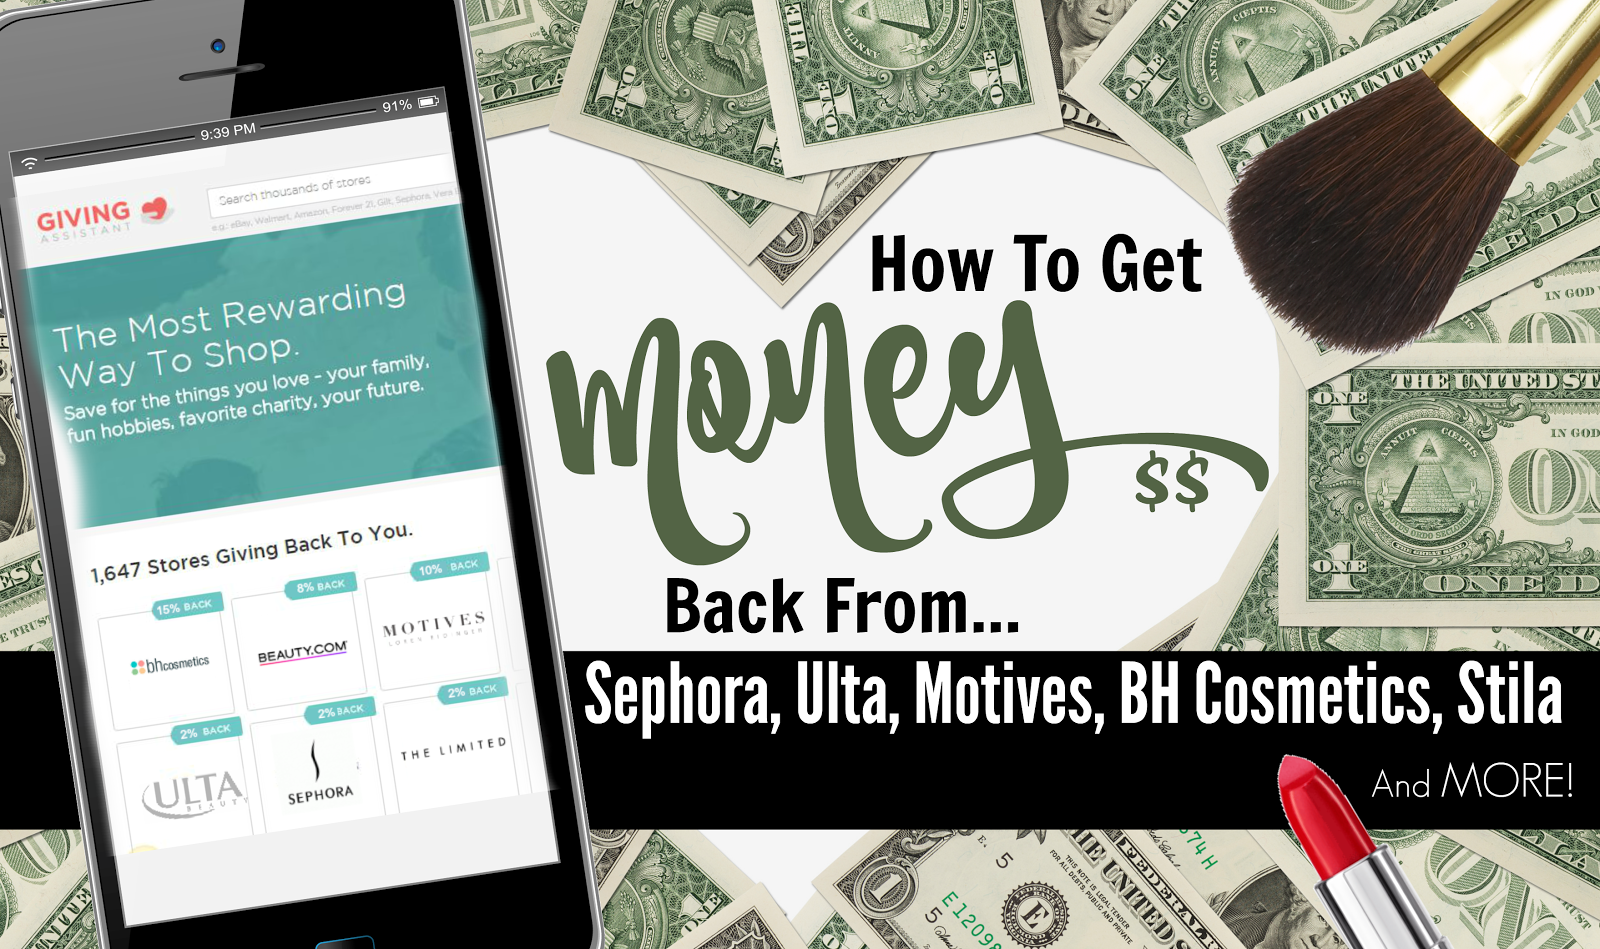 How To Get Money Back From Sephora, Motives, BH Cosmetics, Ulta ...